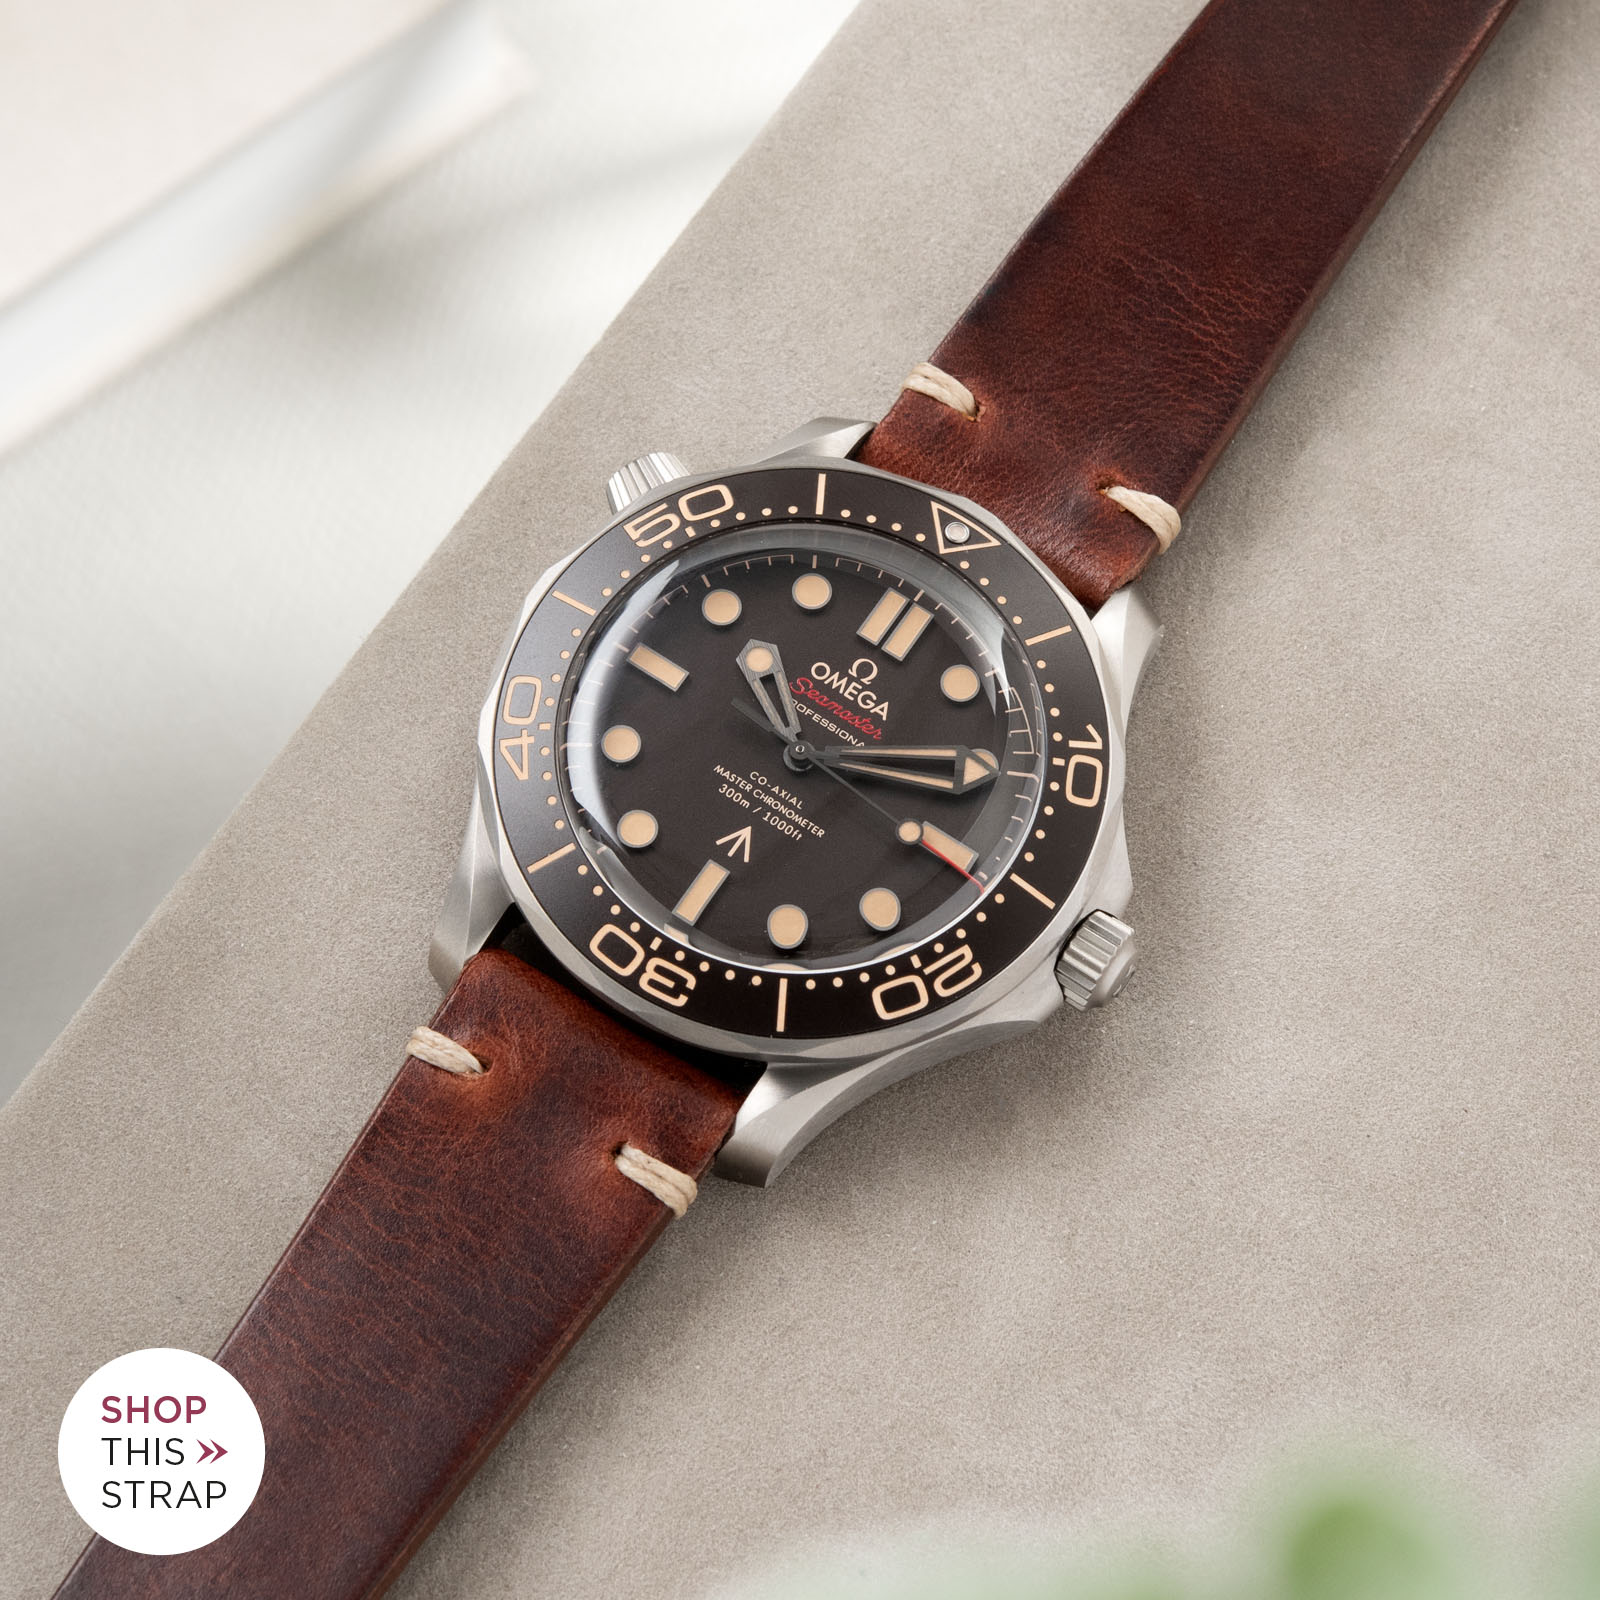 Bulang and Sons_Strapguide_Omega Seamaster_Siena Brown Leather Watch Strap